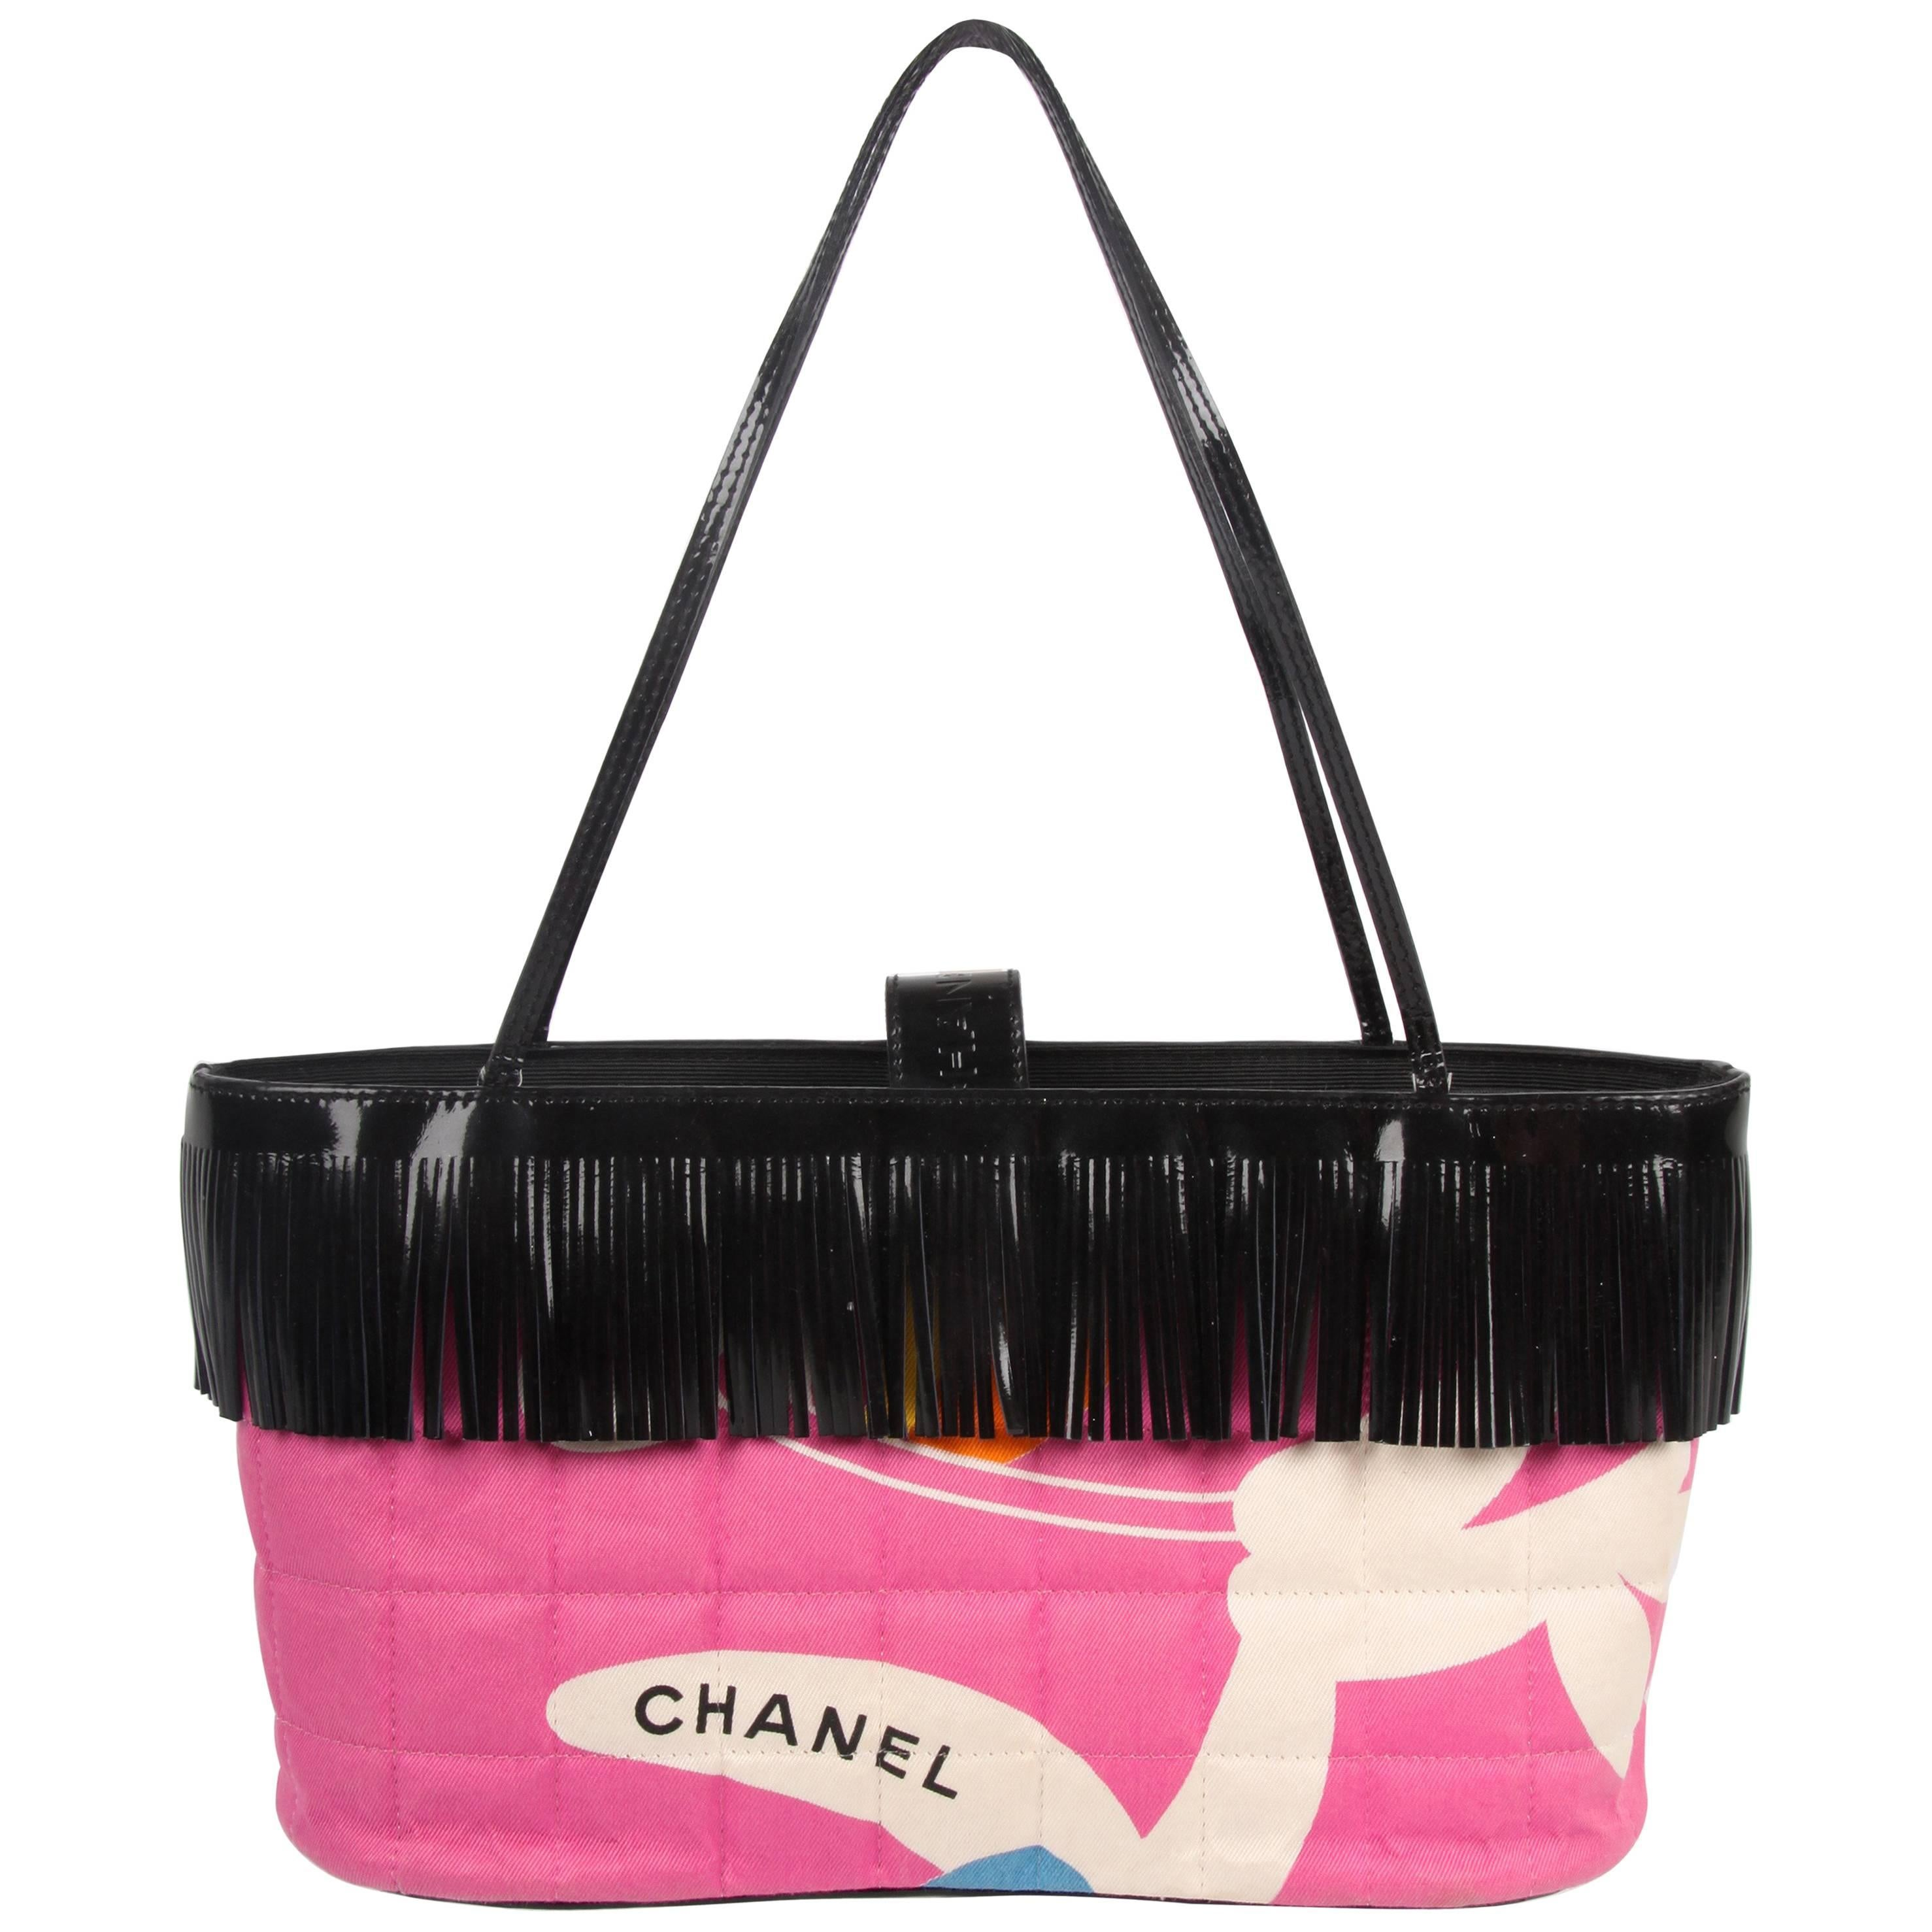 ad963d34d61a Chanel Pink and Black Canvas and Patent Leather Mini Bag at 1stdibs